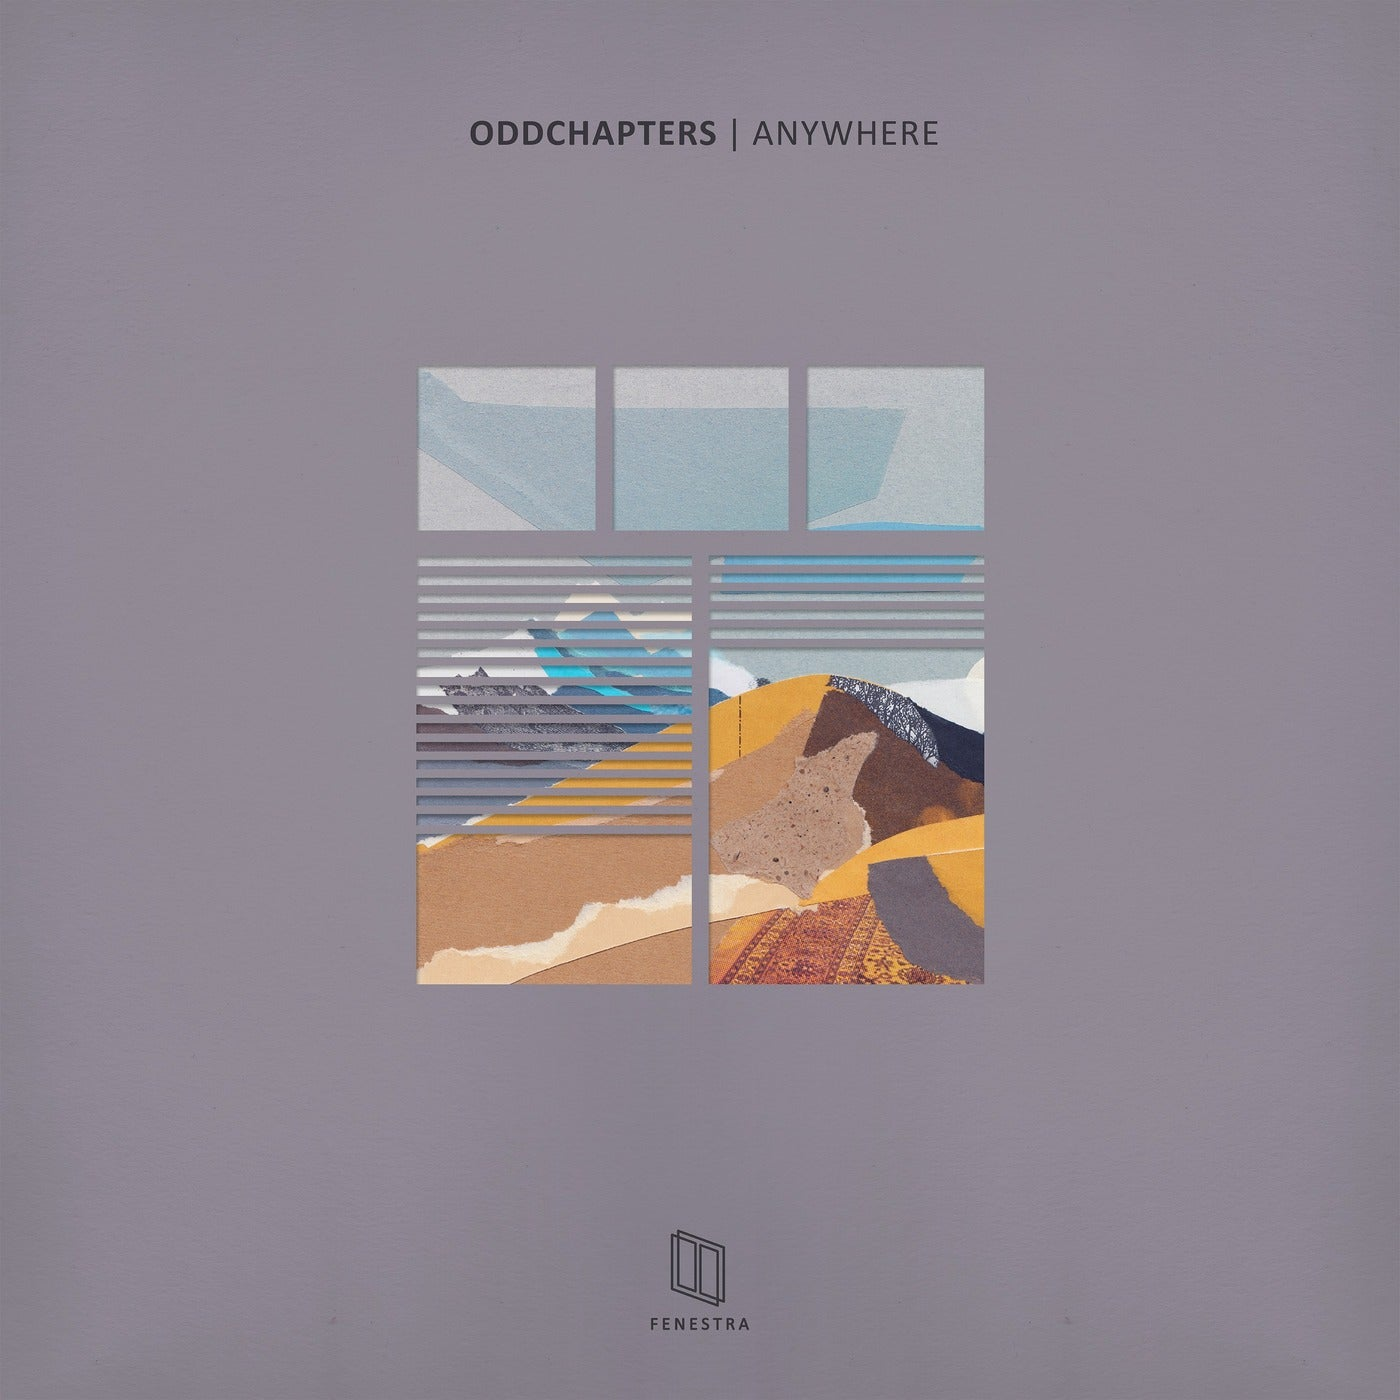 Oddchapters - Anywhere (2021)